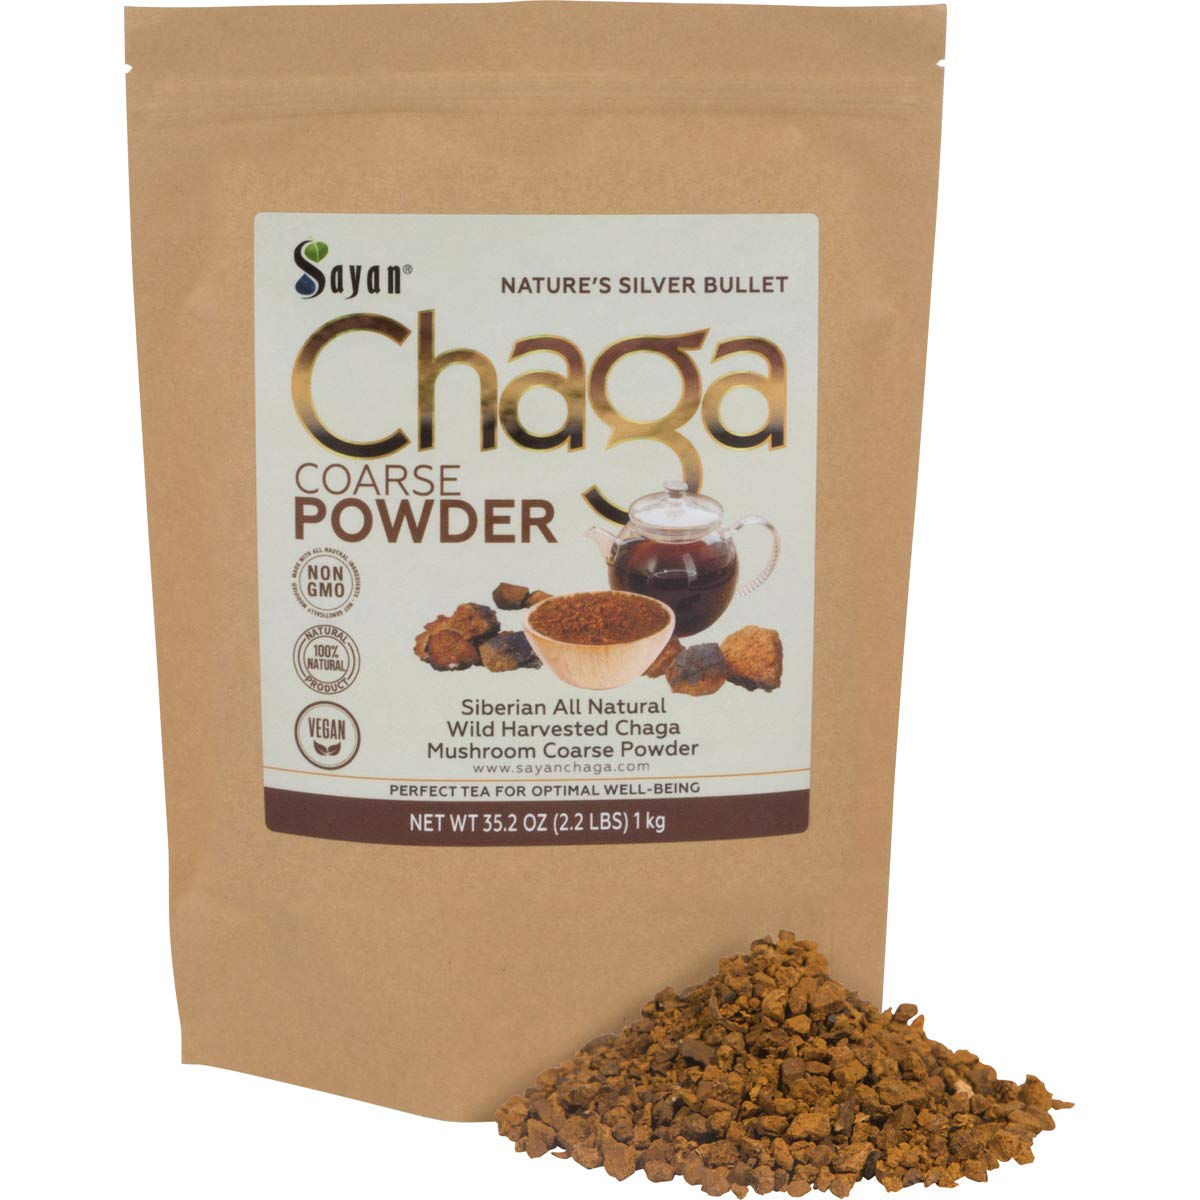 Sayan Siberian Raw Ground Chaga Powder 2.2 Lbs 1Kg – Wild Forest Mushroom Tea, Powerful Adaptogen Antioxidant Supplement, Support for Immune System, Digestive Health Helps Inflammation Reduction